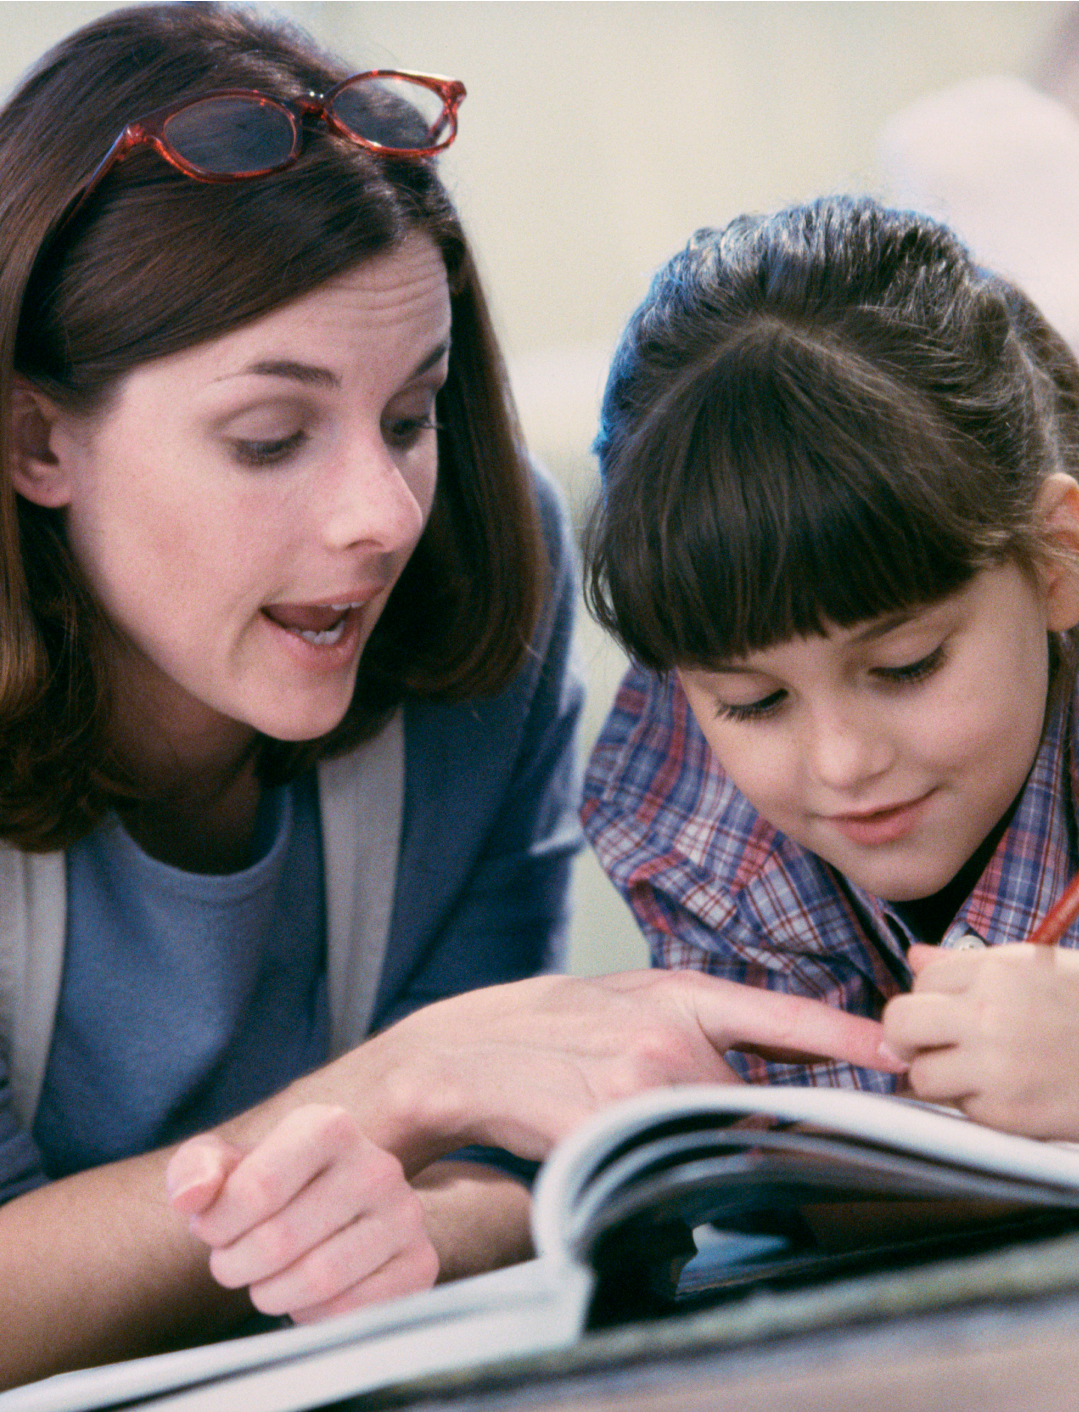 Strategies To Survive Homework With Your Kids